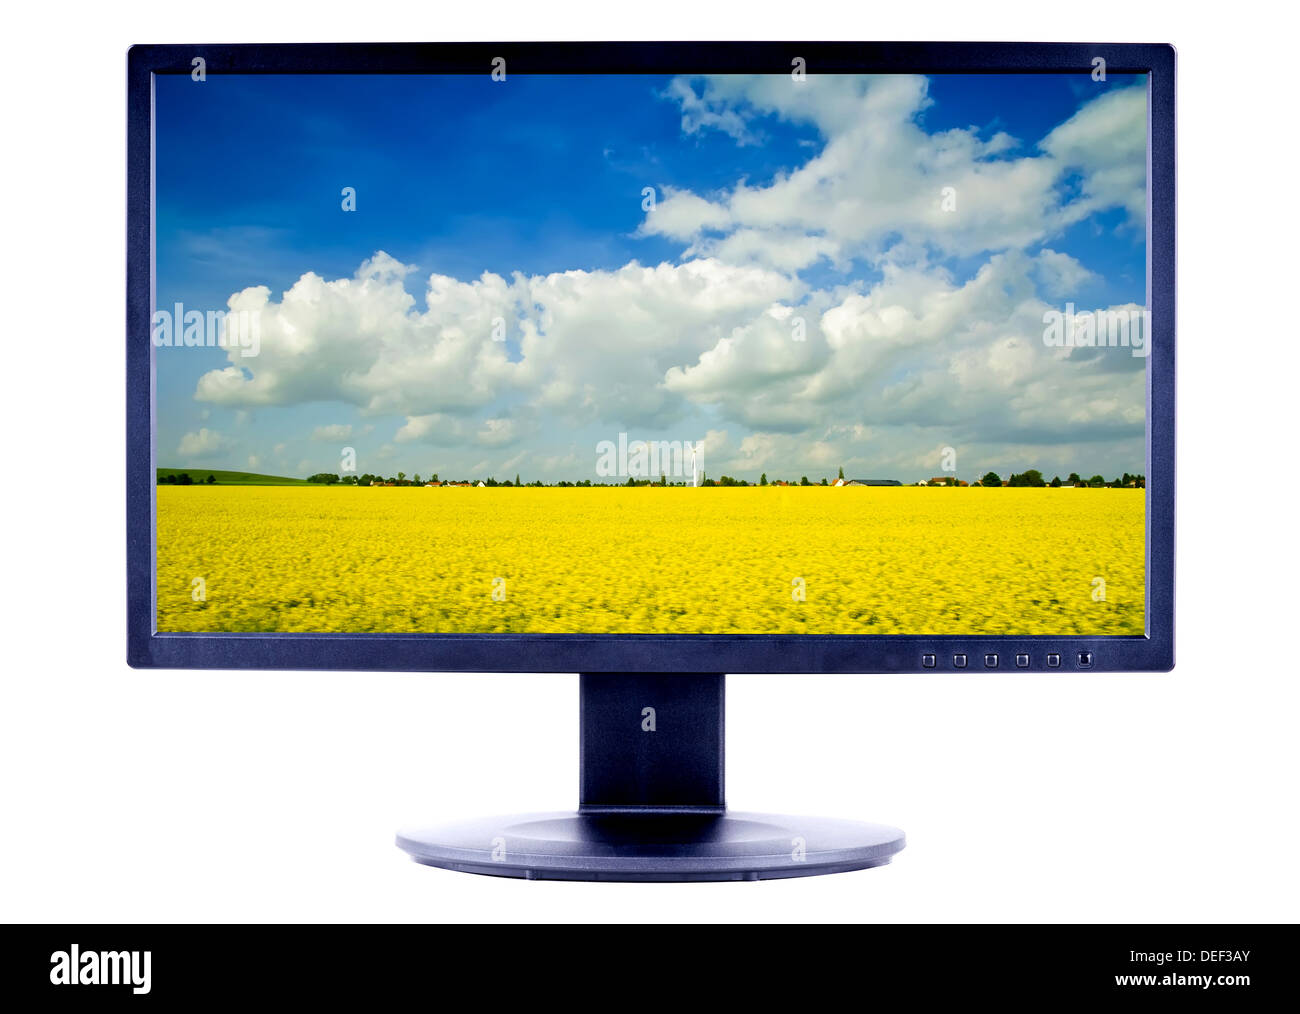 lcd monitor tv screen with landscape isolated on a white background - Stock Image